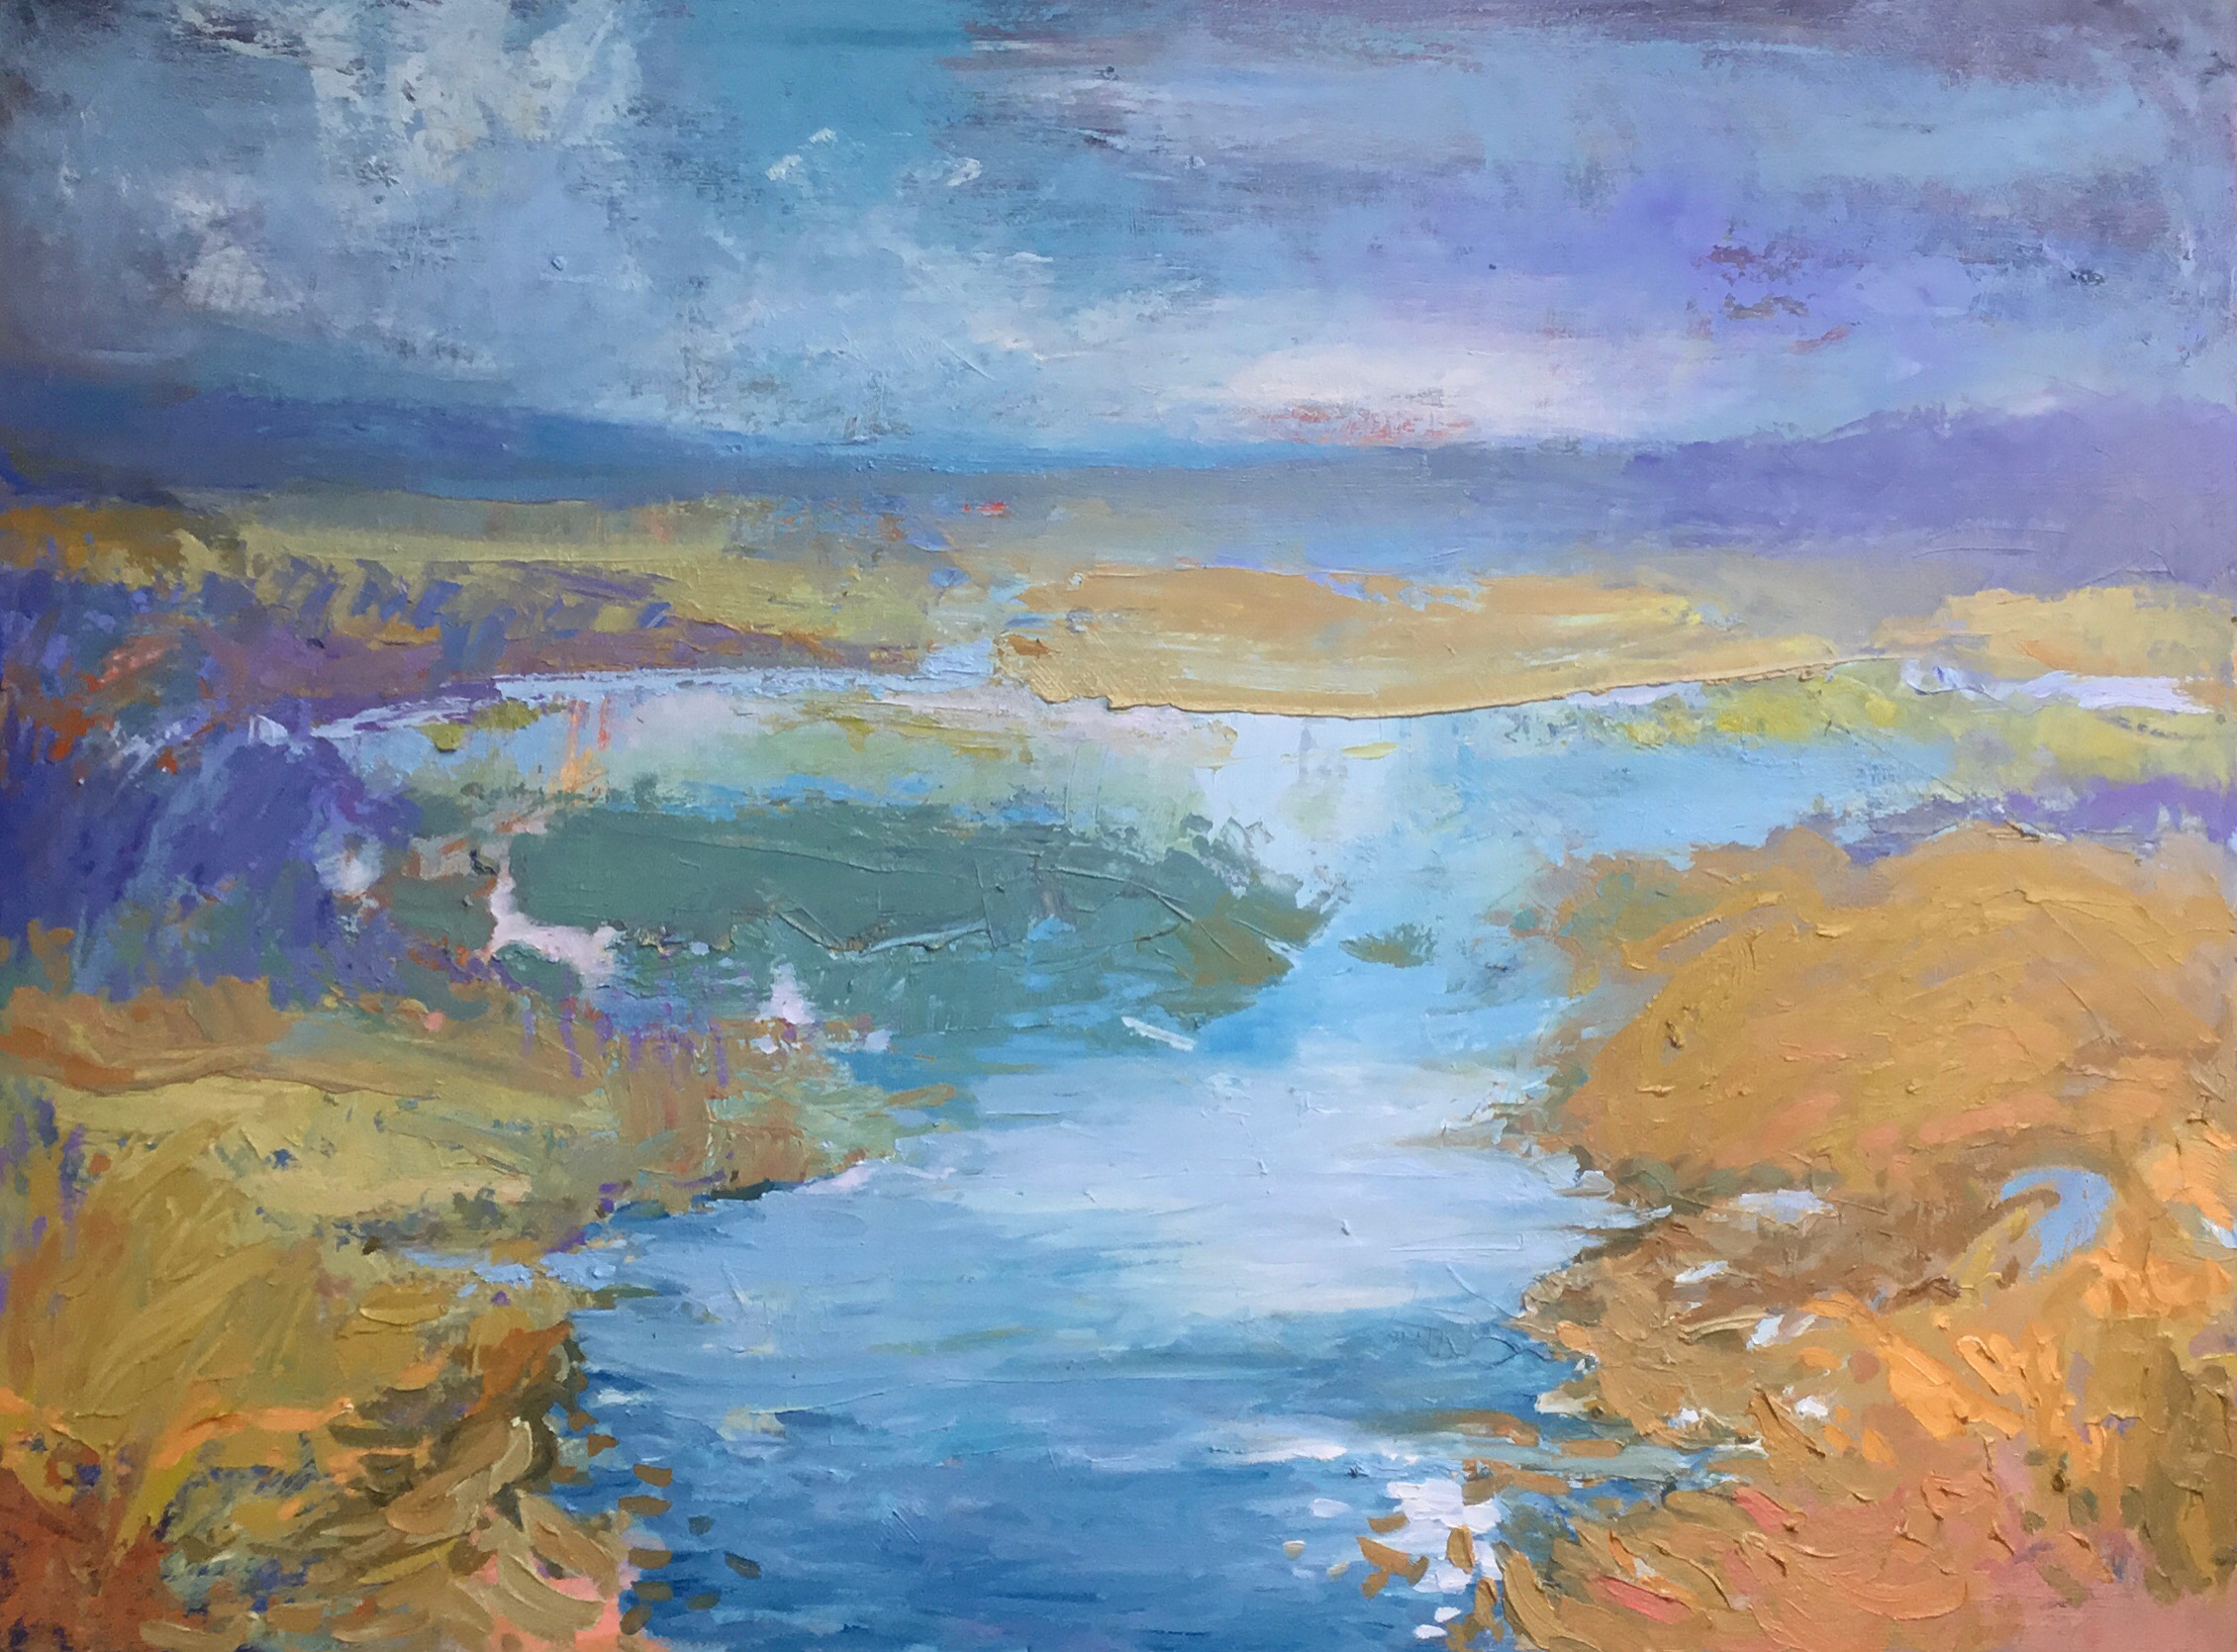 Distant Shores, oil painting by Carol Finkbeiner Thomas | Effusion Art Gallery + Cast Glass Studio, Invermere BC